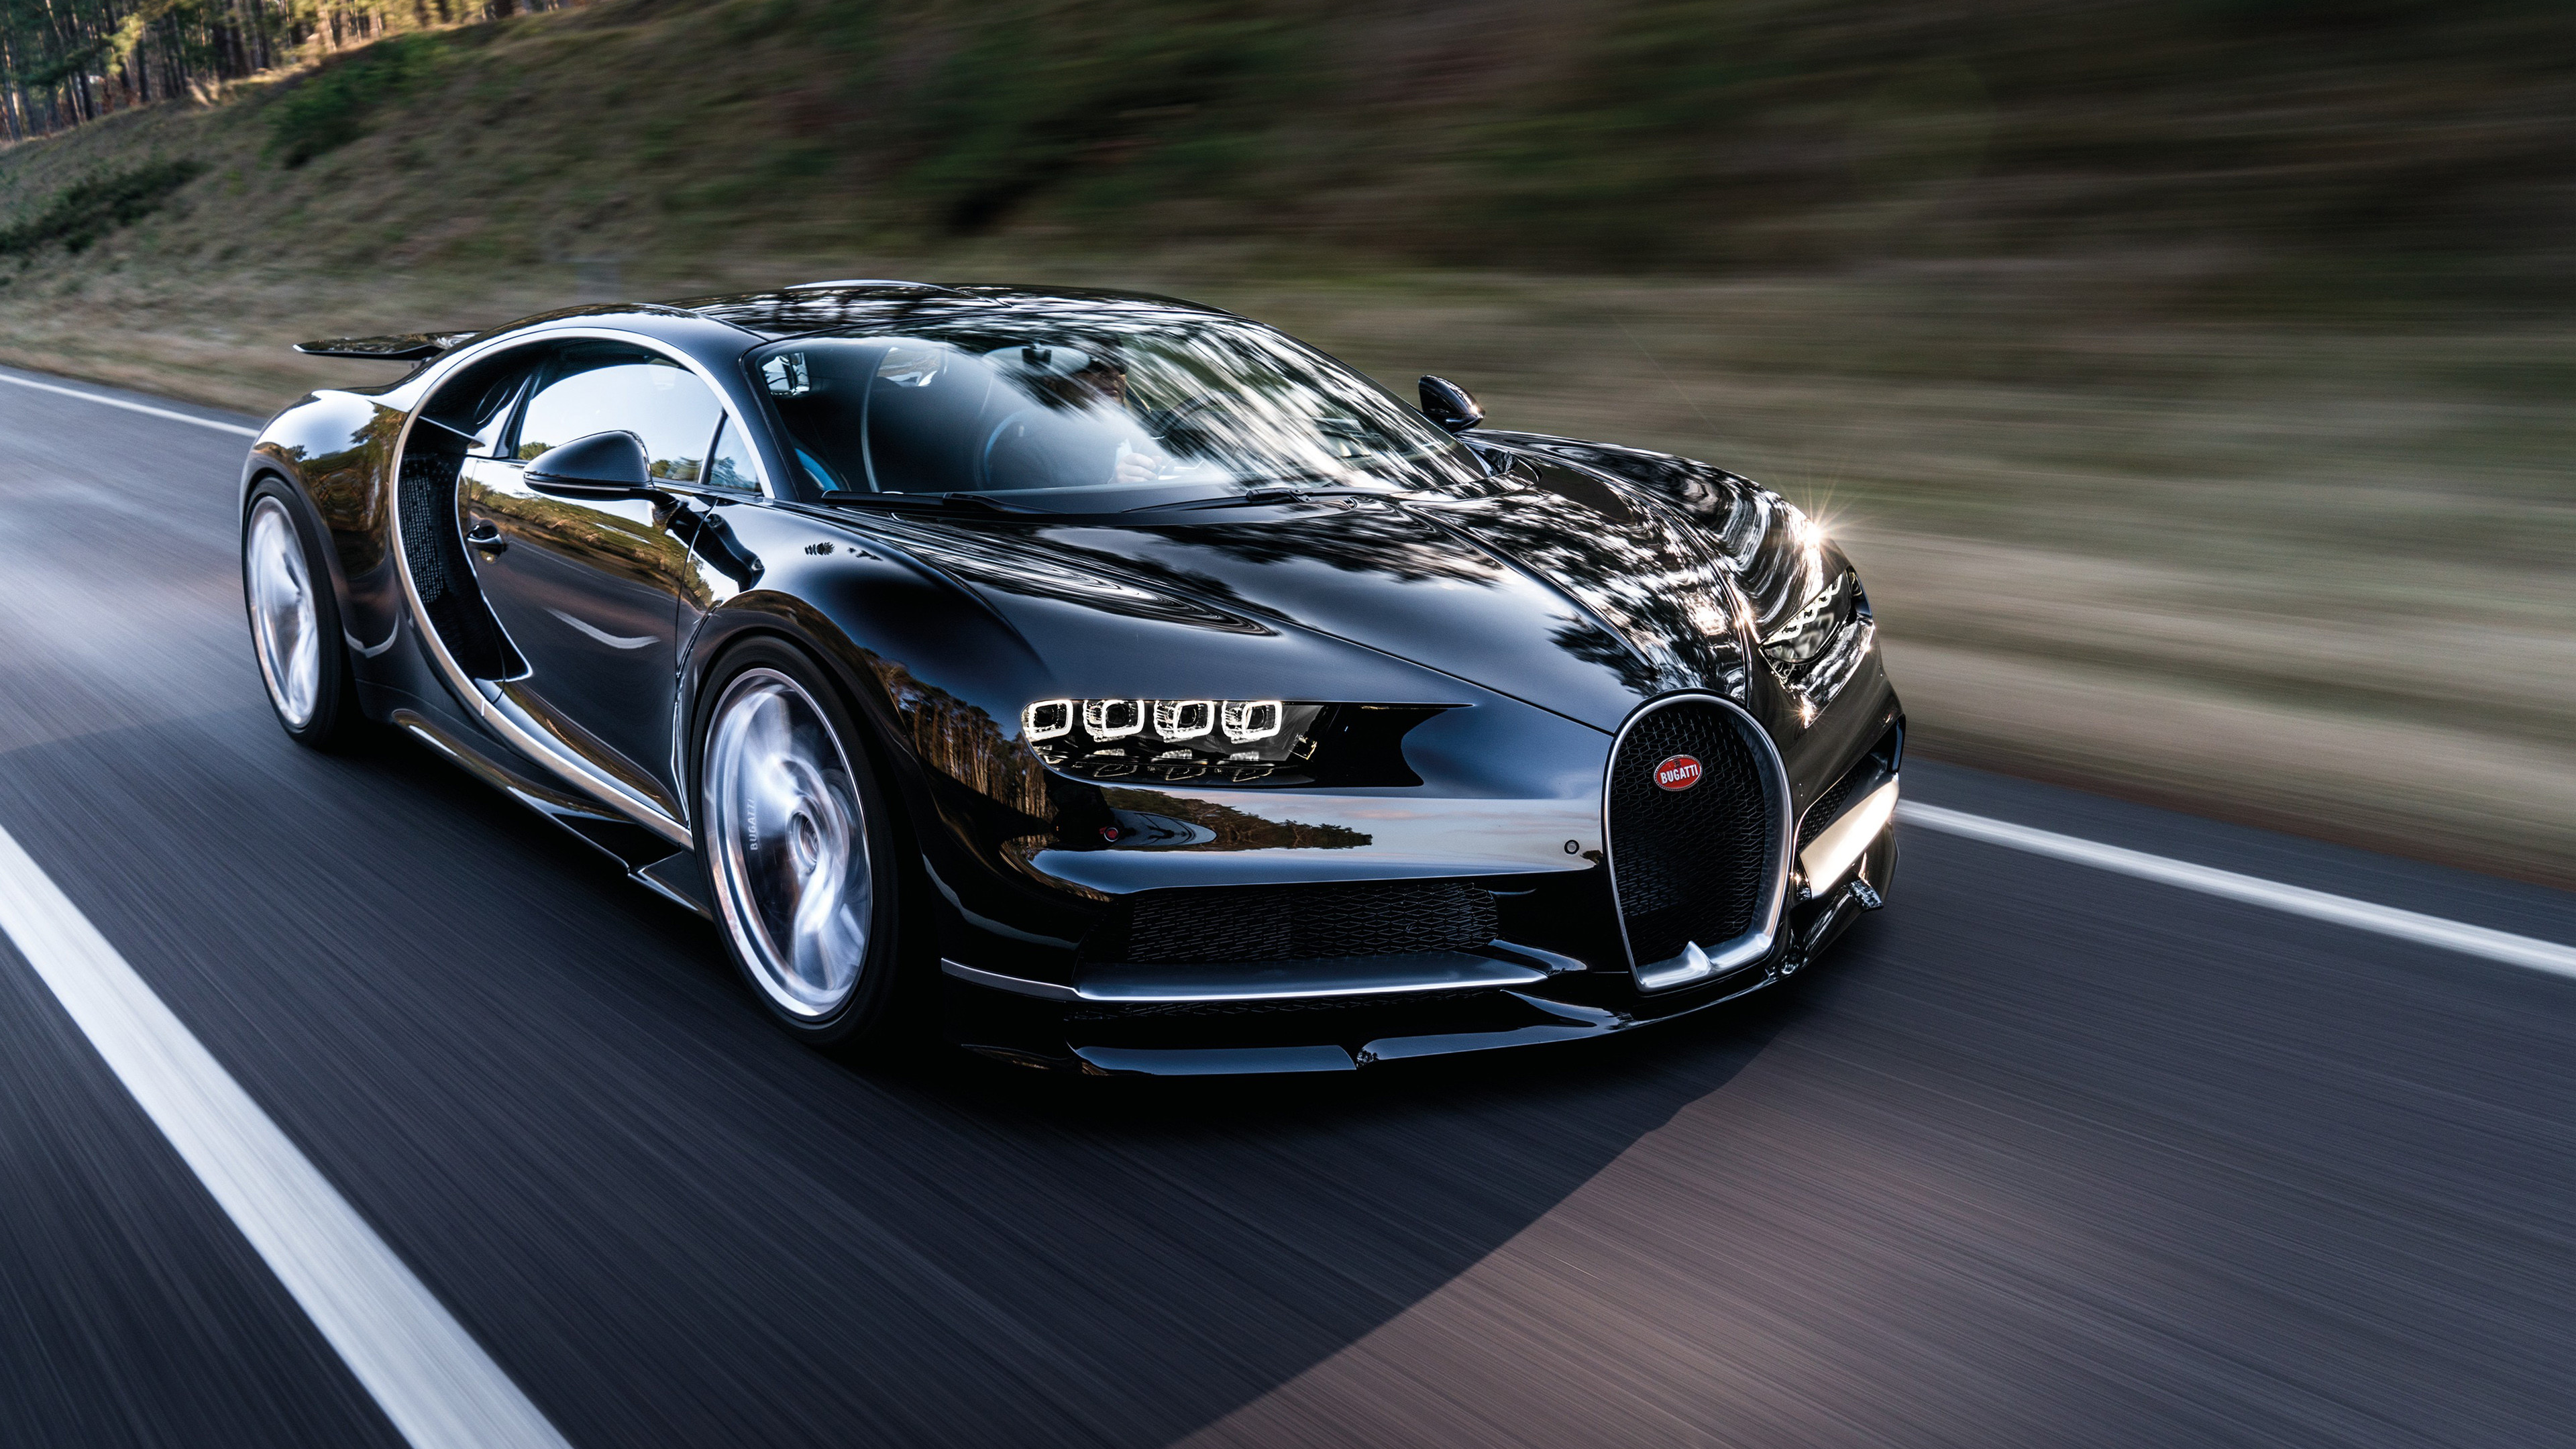 New bugatti wallpaper